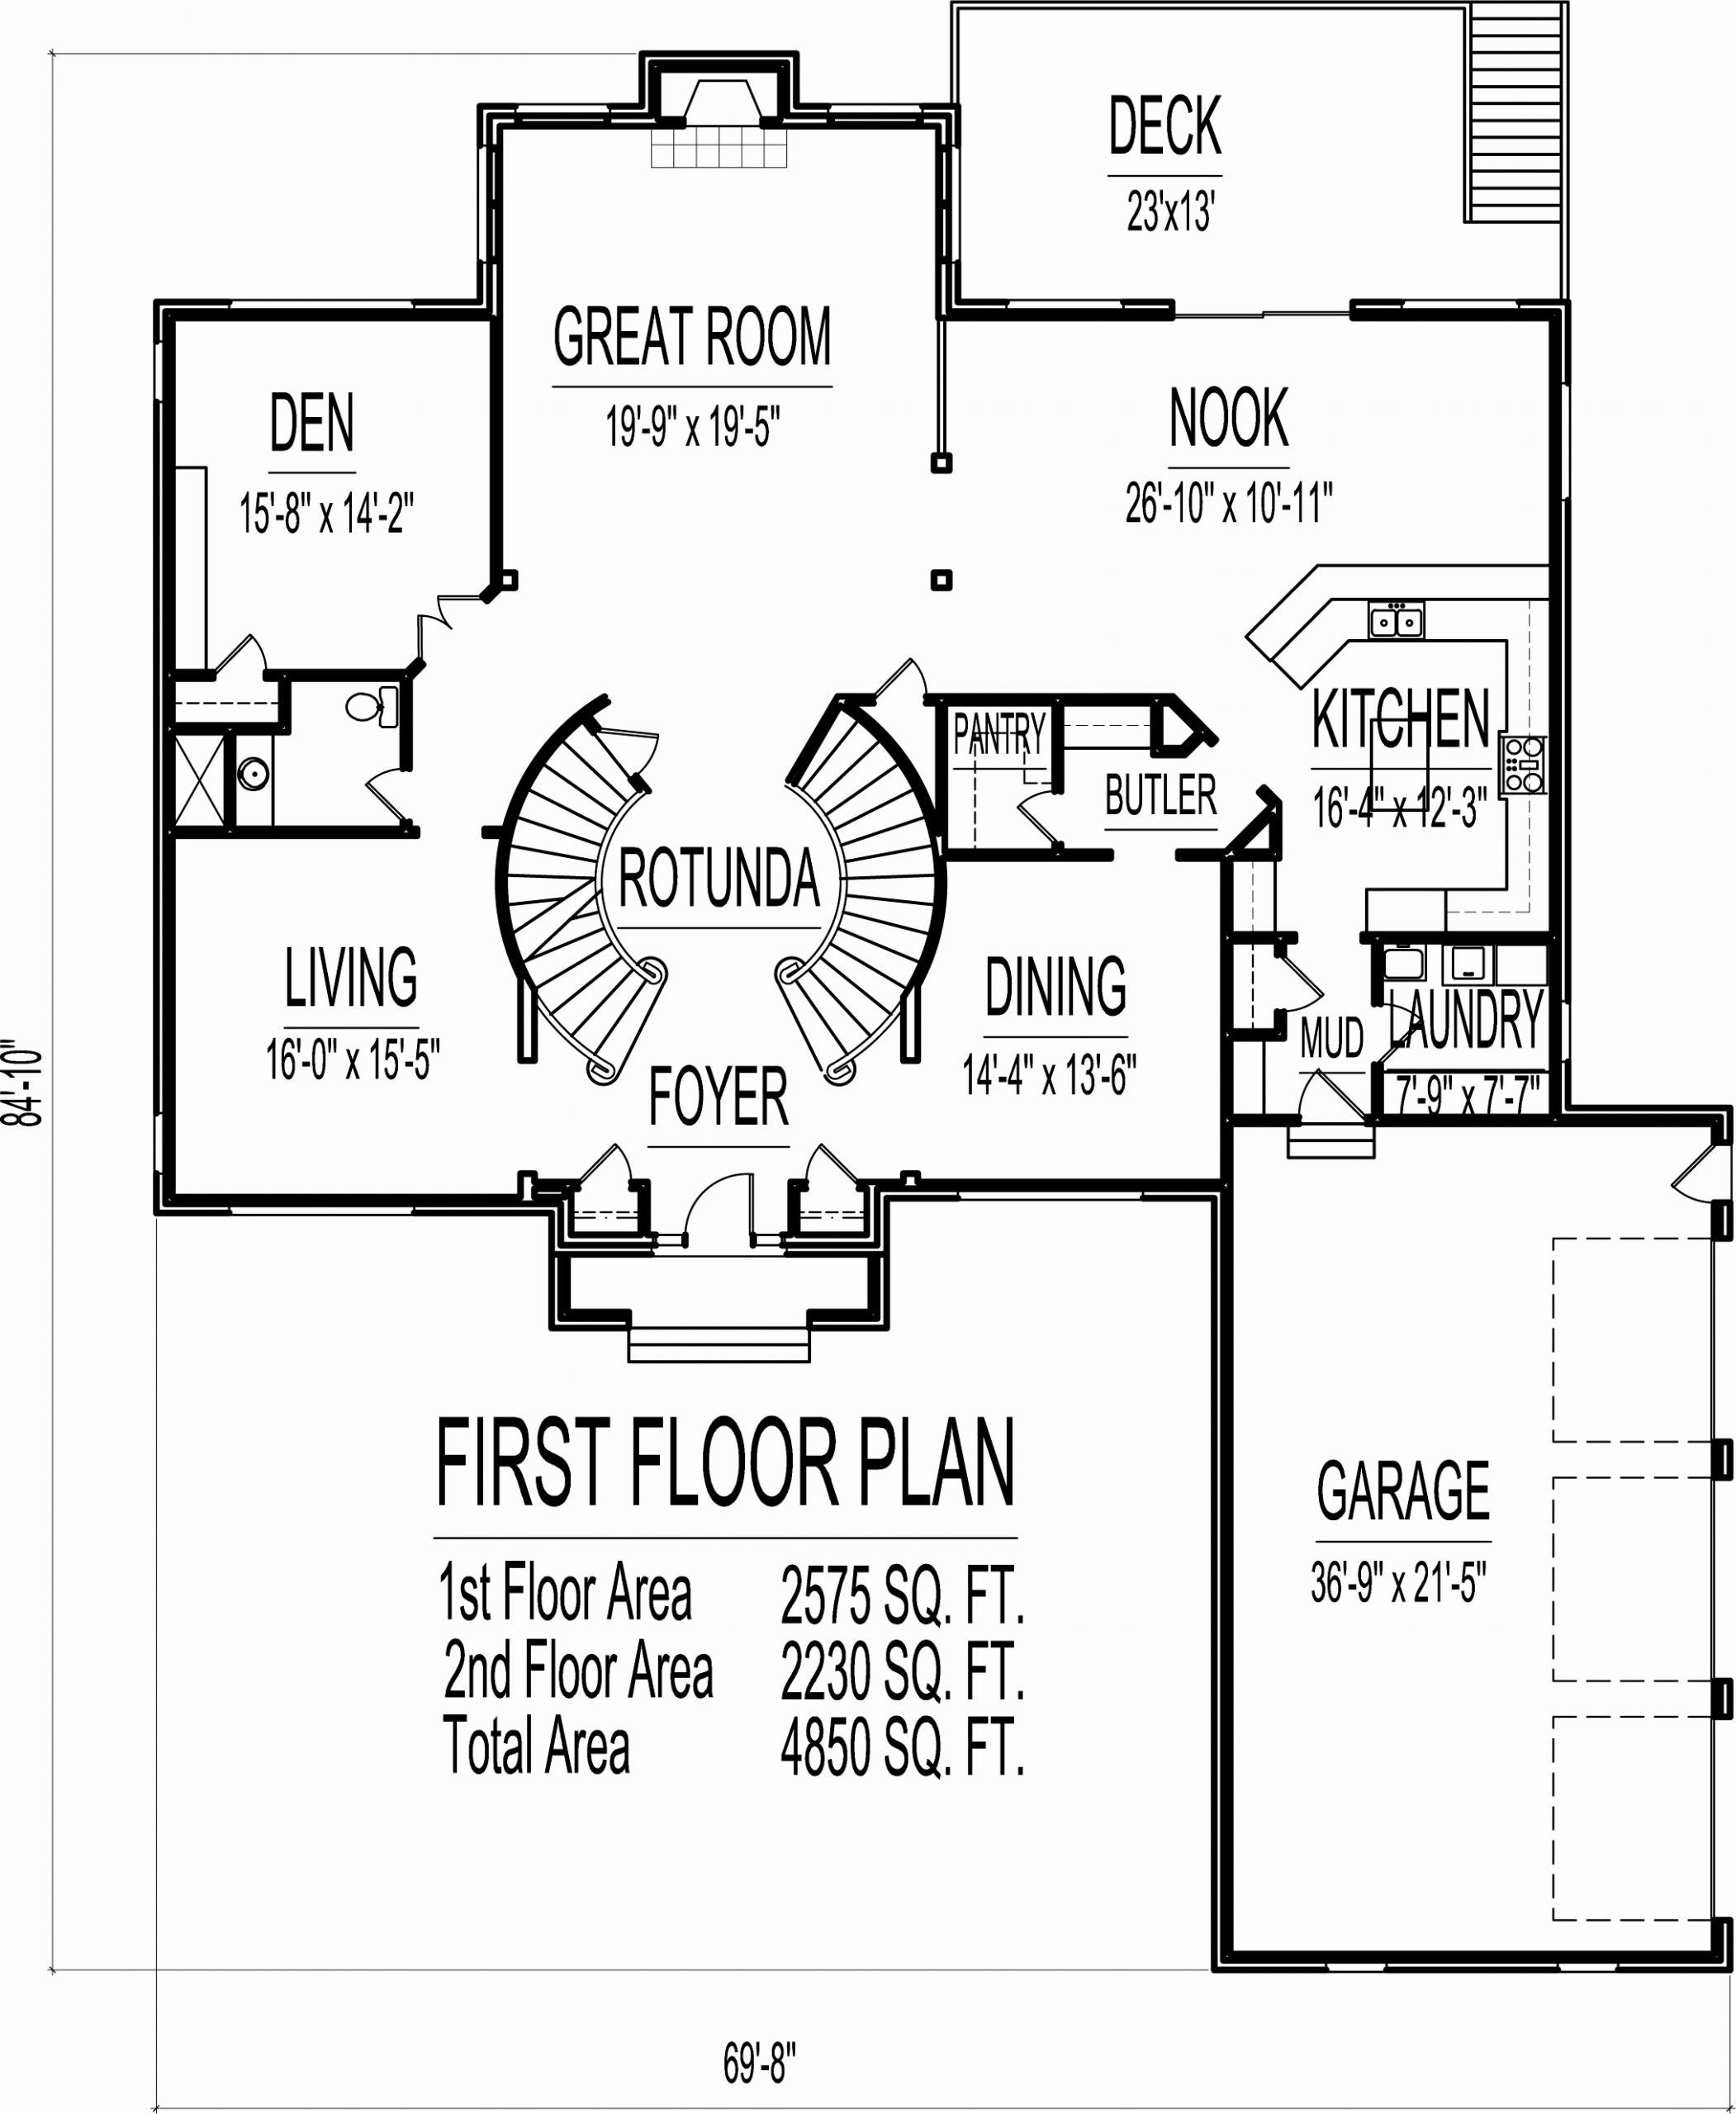 3000 Sq Foot House Plans Inspirational 3000 Sq Ft Single Story Mediterranean House Plans Plan In 2020 Bungalow House Floor Plans House Floor Plans House Plans